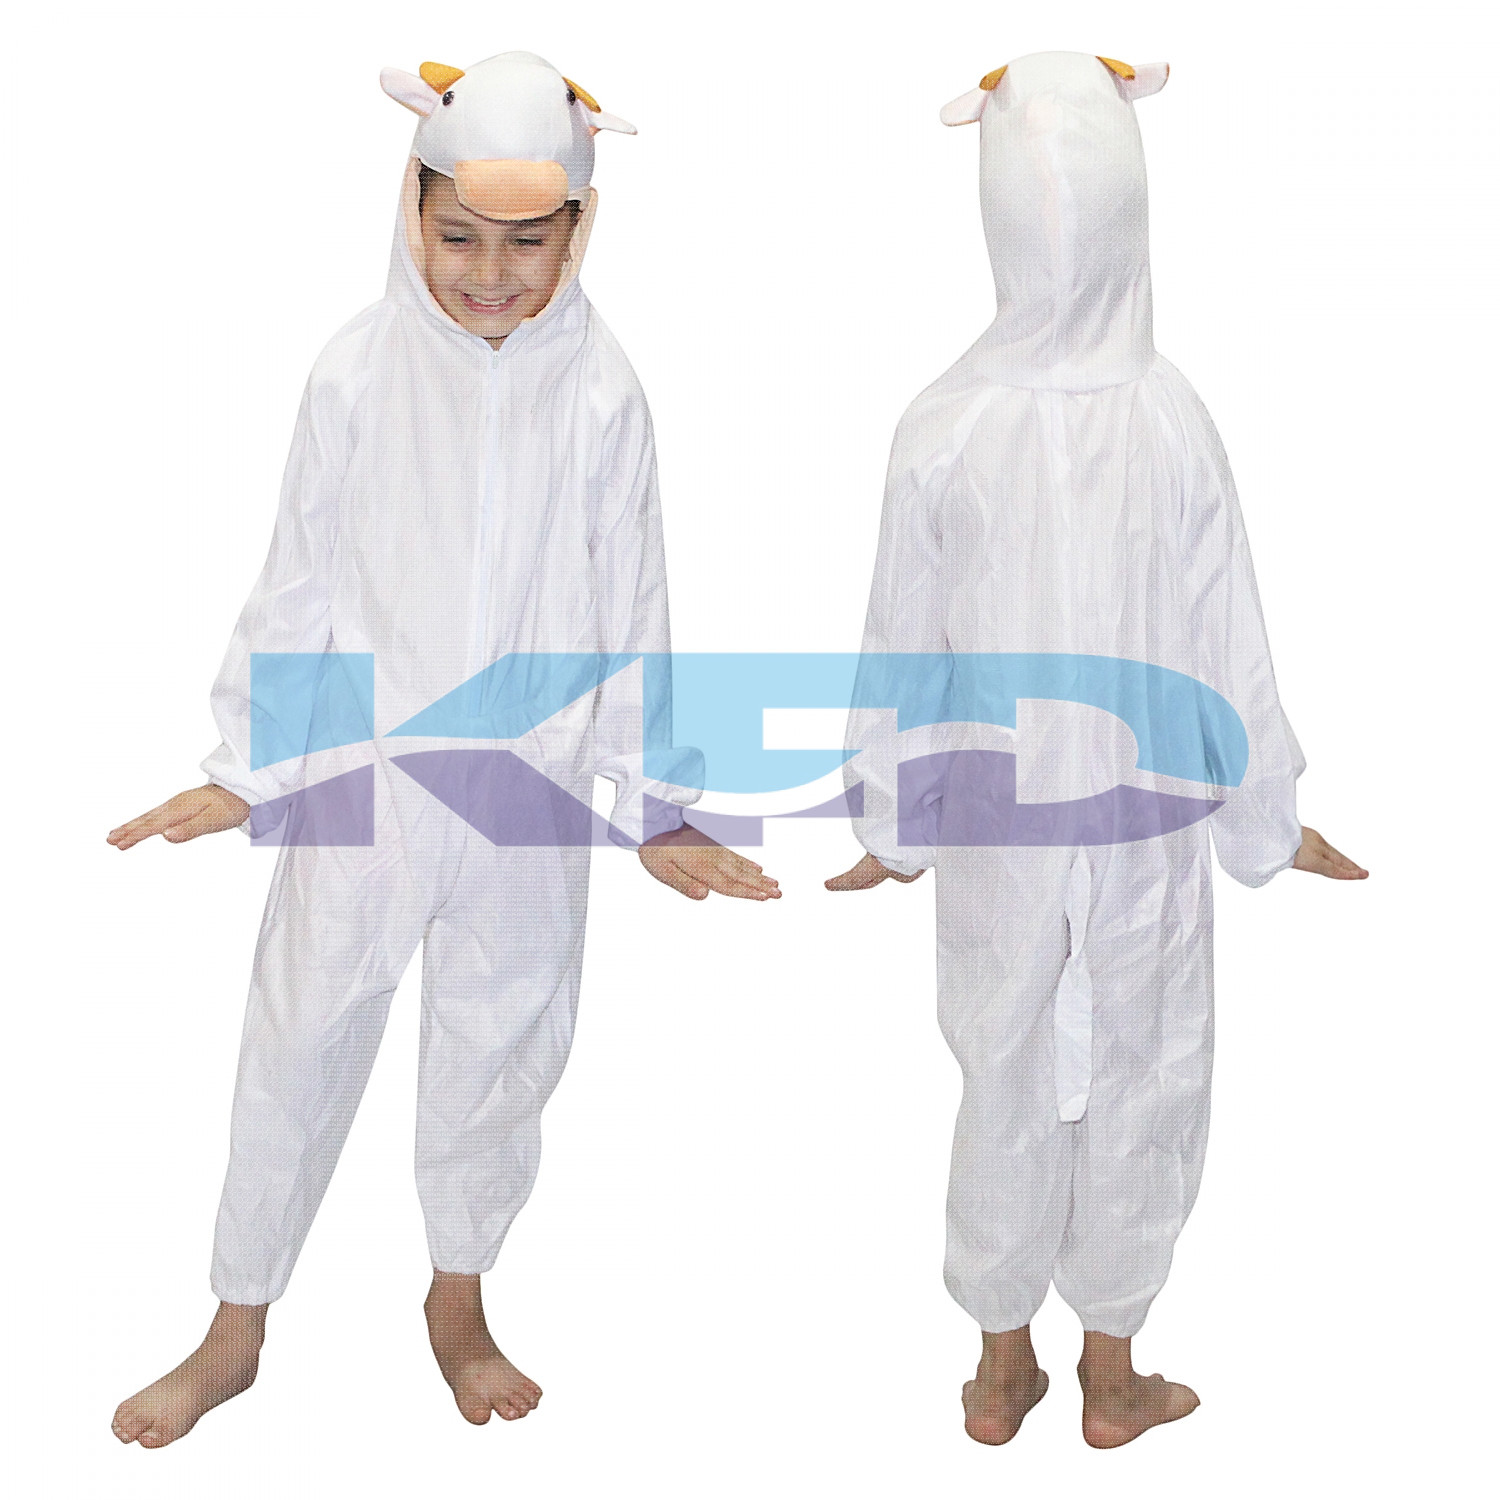 Calf fancy dress for kids,Wild Animal Costume for School Annual function/Theme Party/Competition/Stage Shows Dress